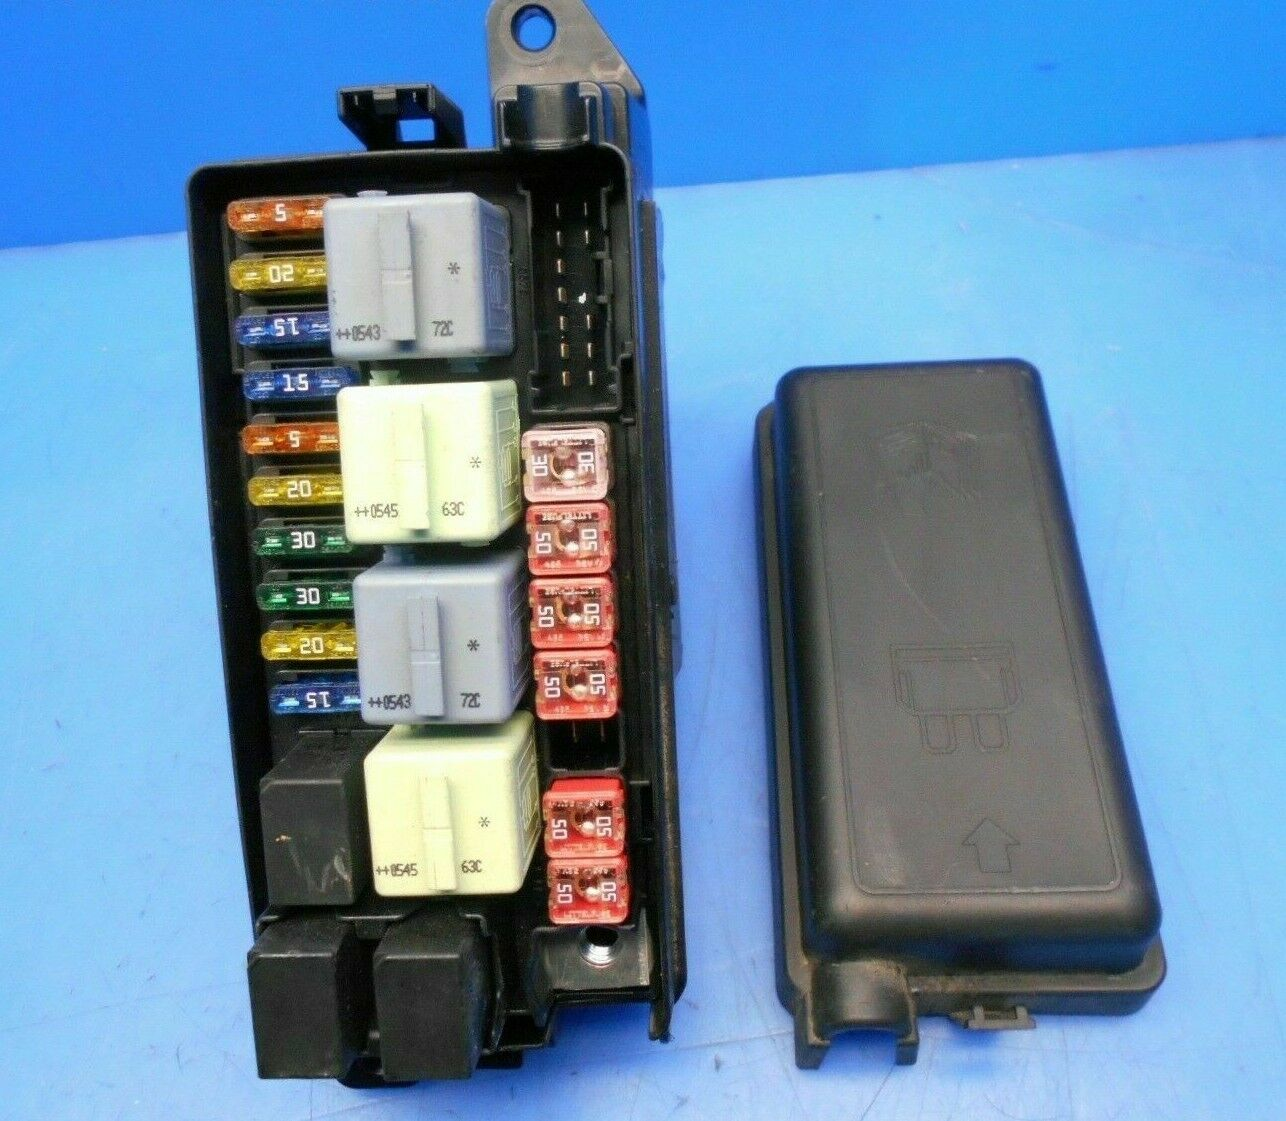 02-08 MINI COOPER R50 R53 FUSE RELAY BOX PANEL W/ COVER 690660405